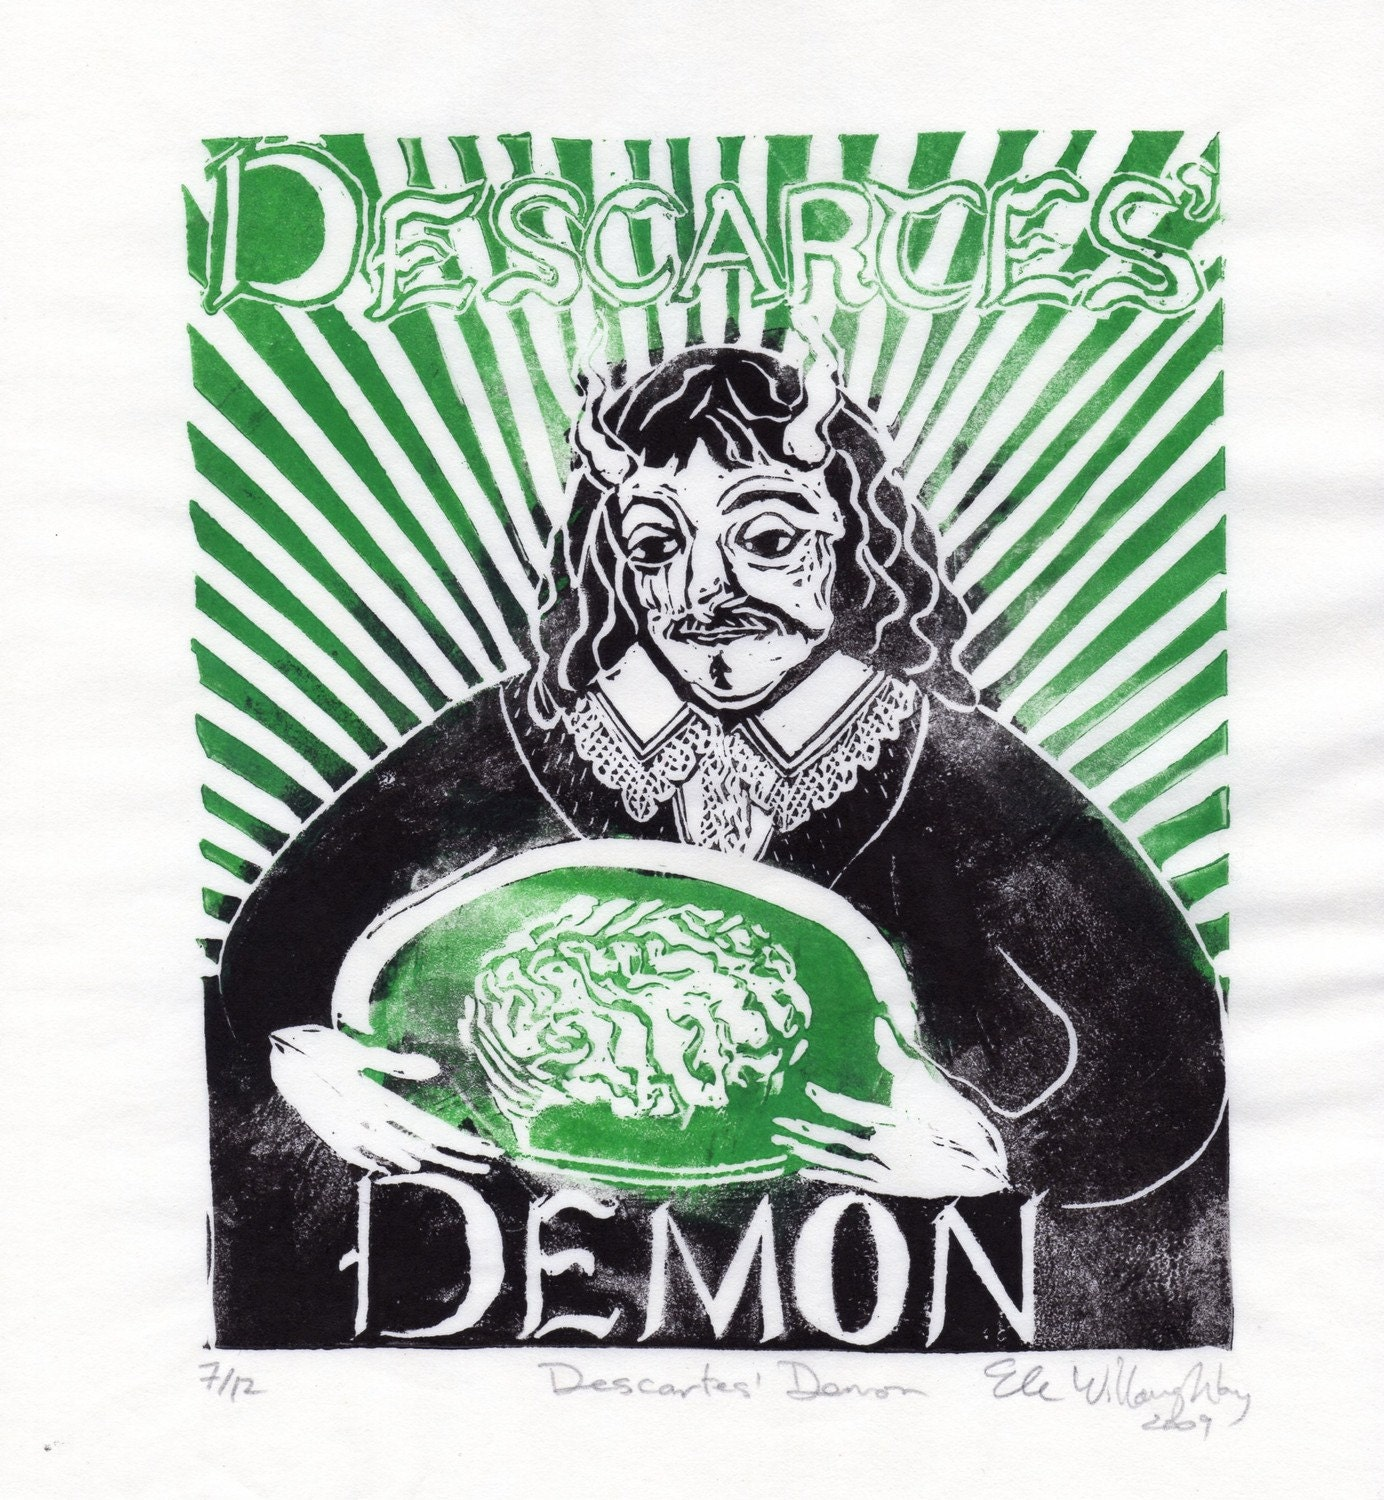 descartes evil demon argument The evil demon argument and/or the brain in the vat argument postulates that everything we sense/think could be manipulated by a powerful entity/demon, so then how do we know anything for sure.